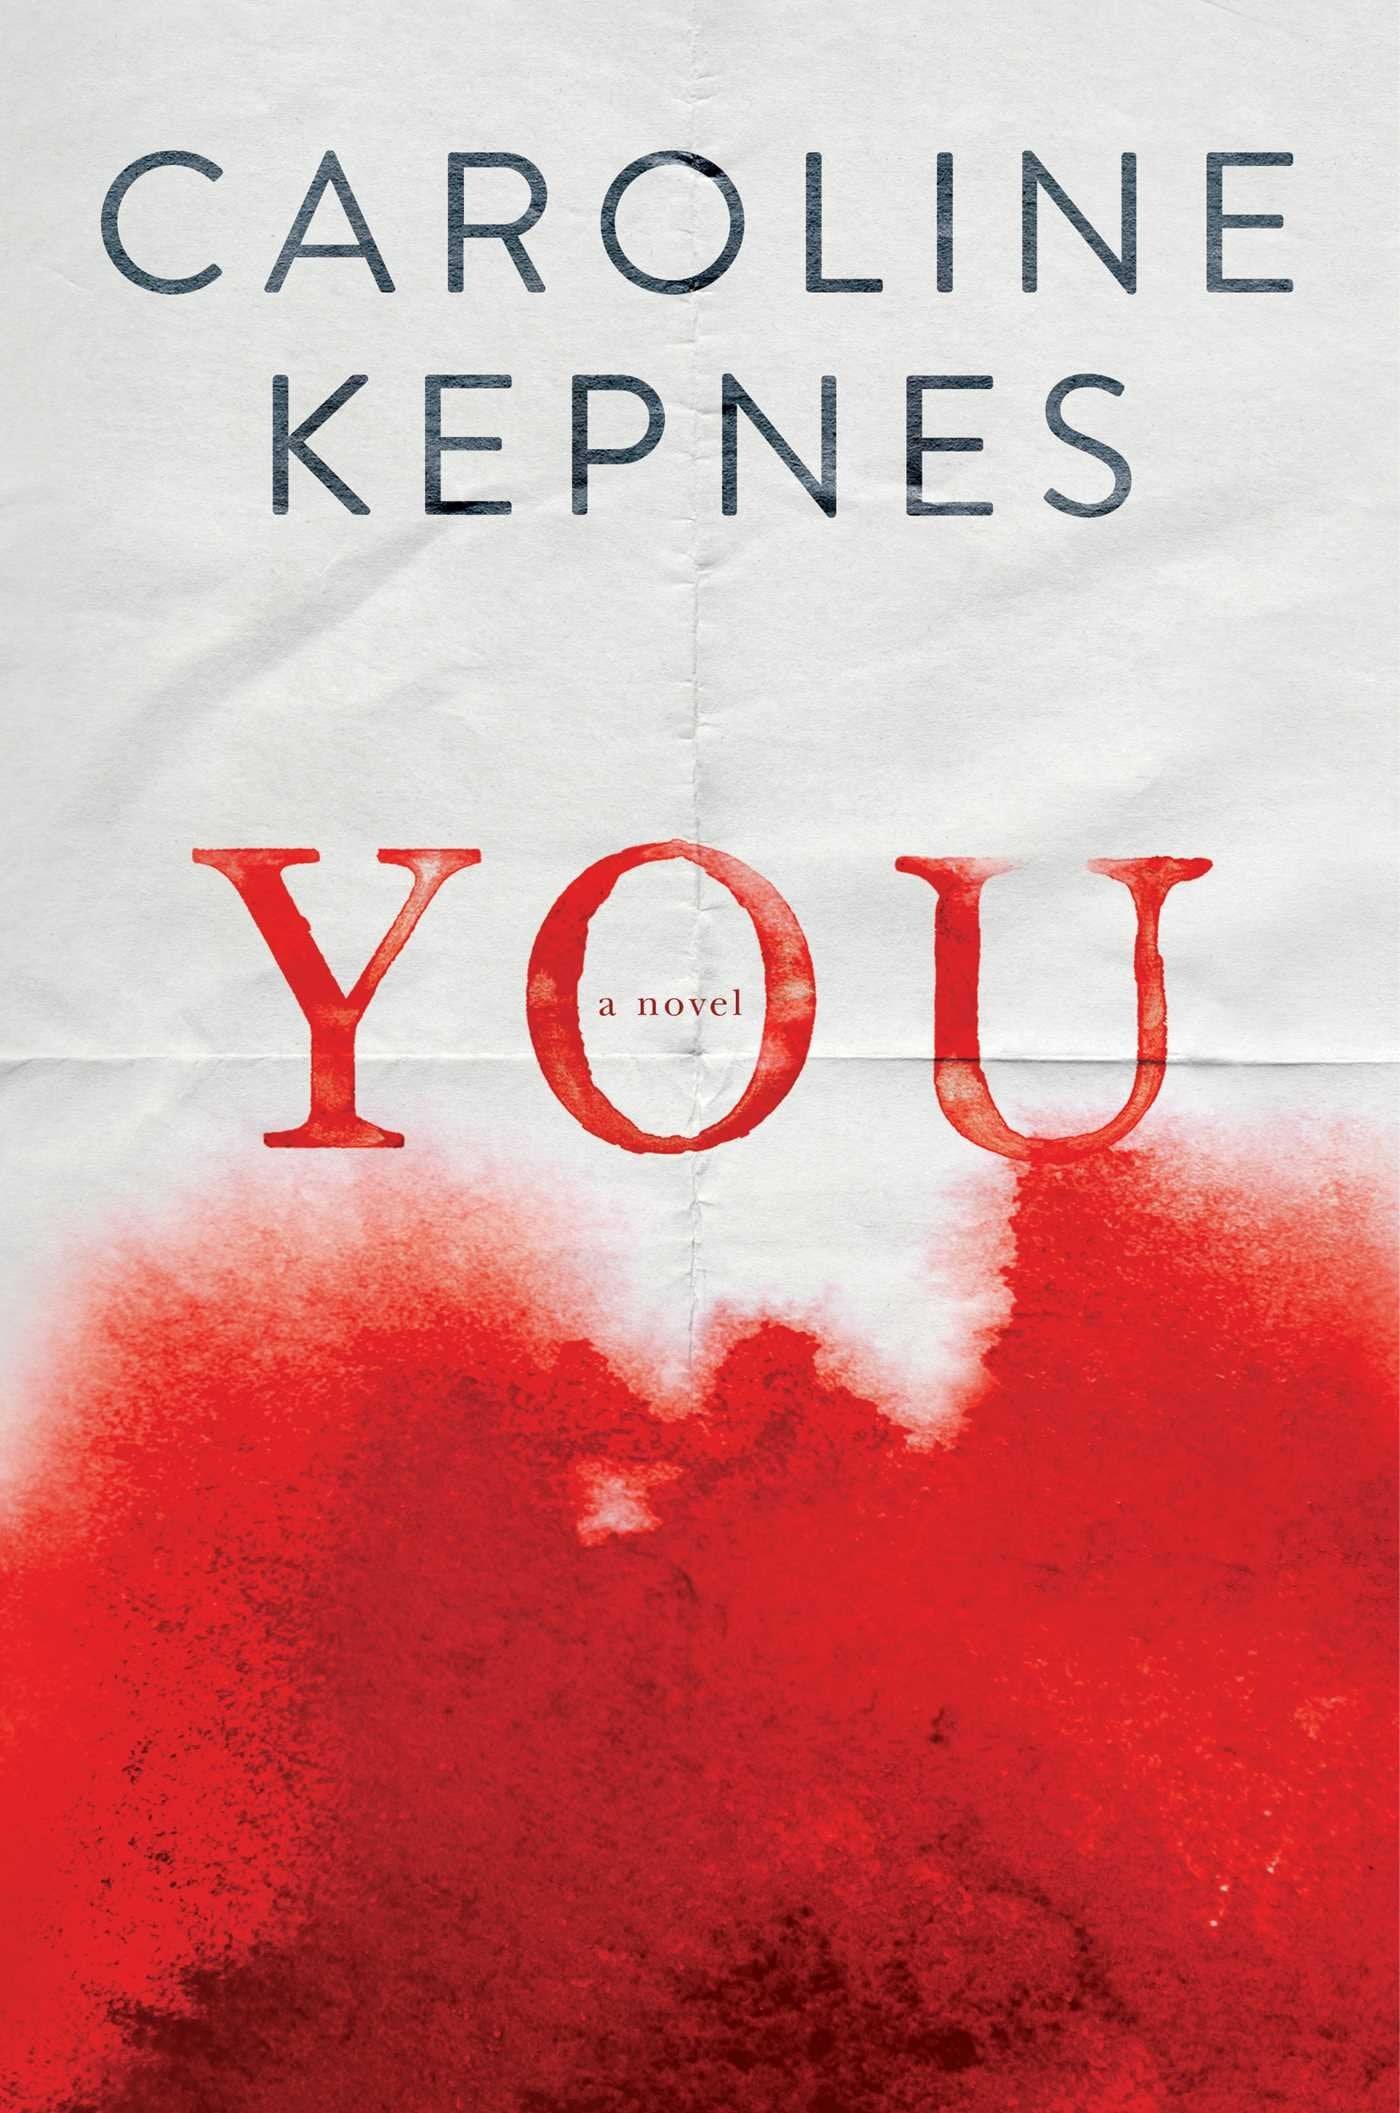 PopsugarLoveOnline DatingYou Author Caroline Kepnes InterviewThe Sexy, Scary Summer Read That Has Stephen King